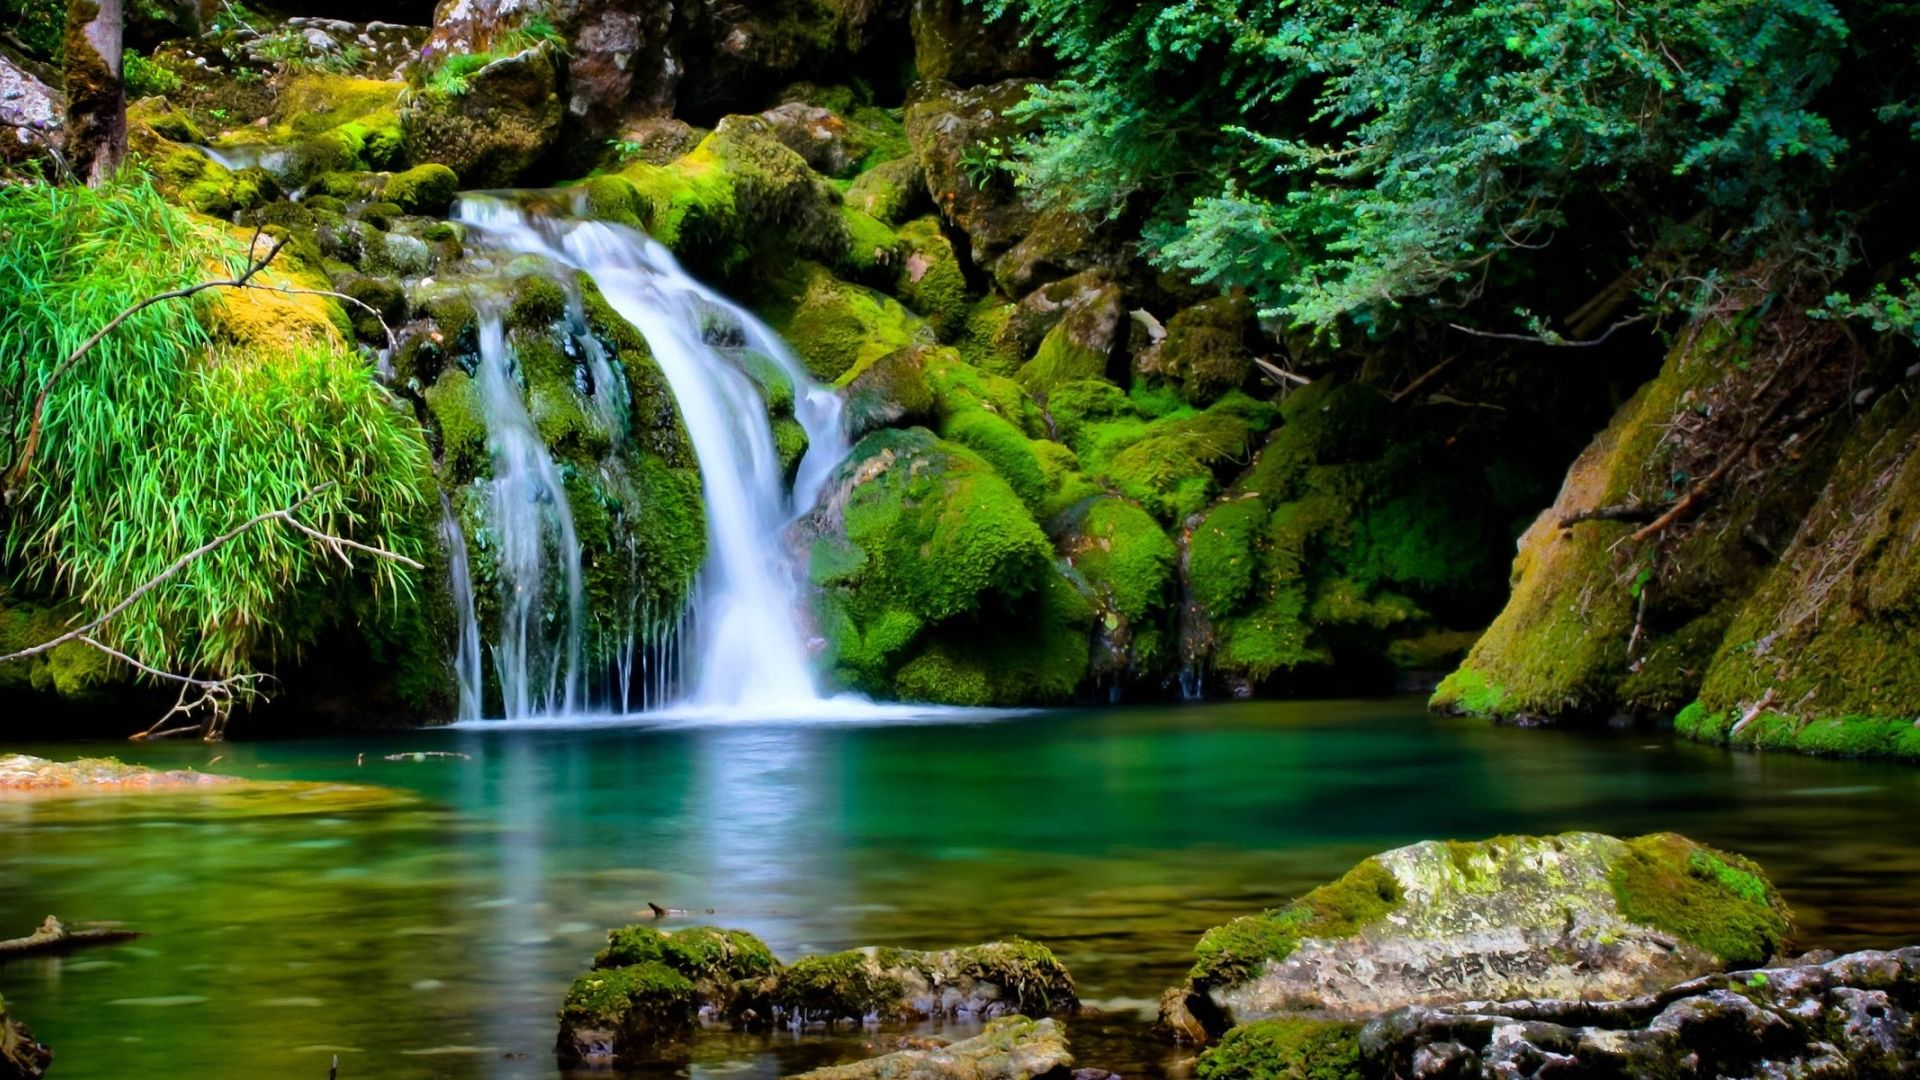 Beautiful Nature Desktop Wallpaper Wallpapers Gallery | Desktop ...